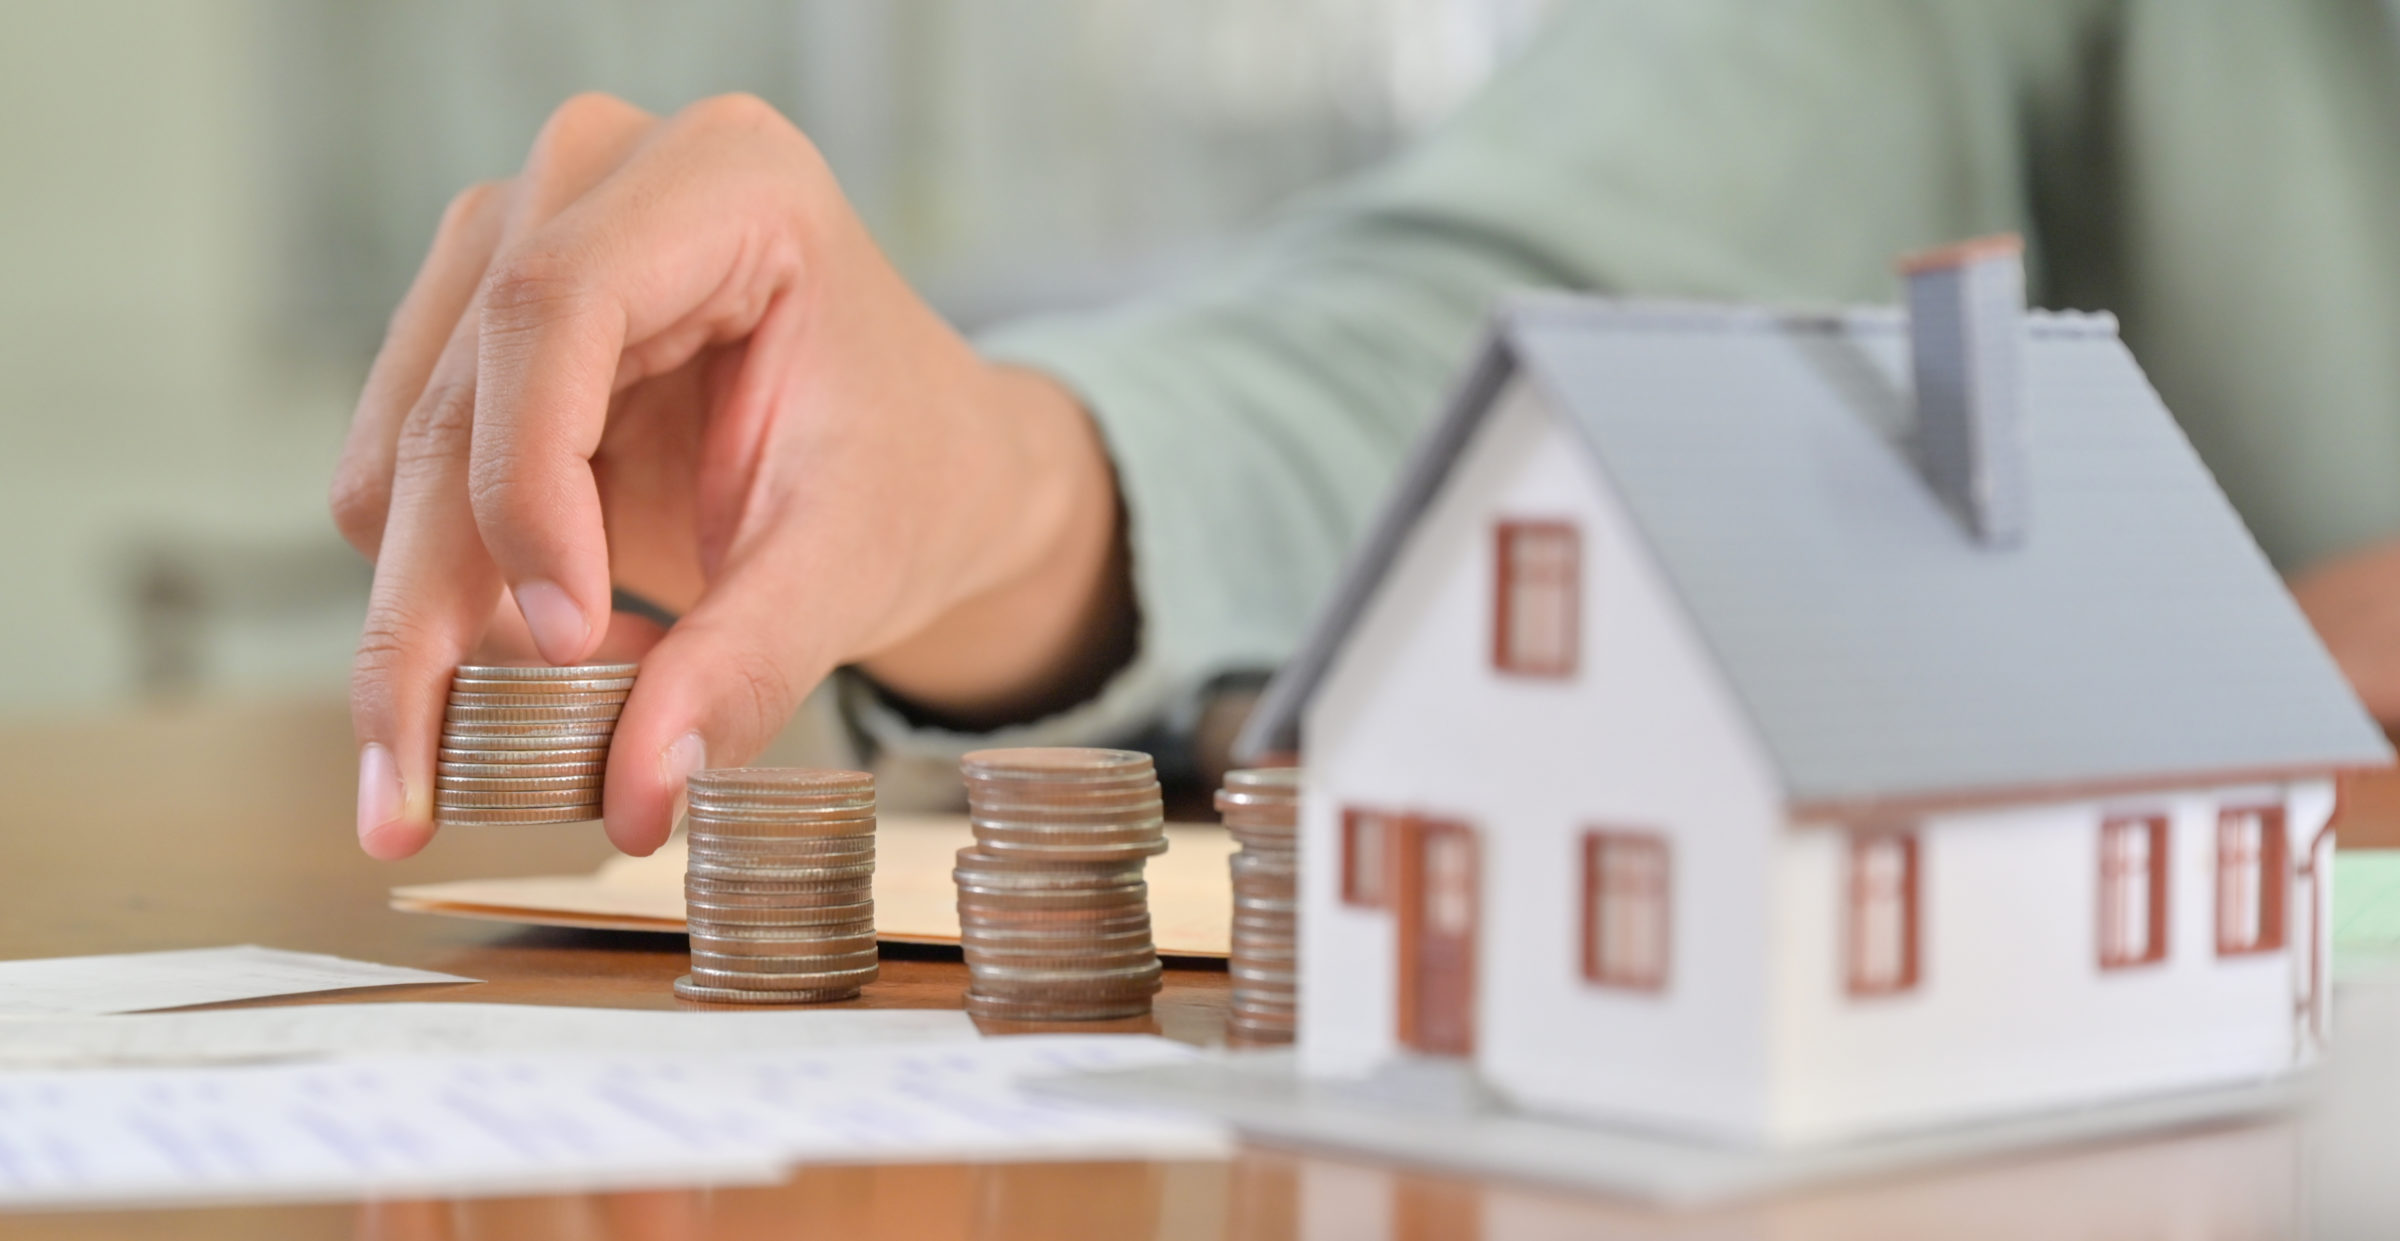 concept of saving money to buy a house D9XK23B